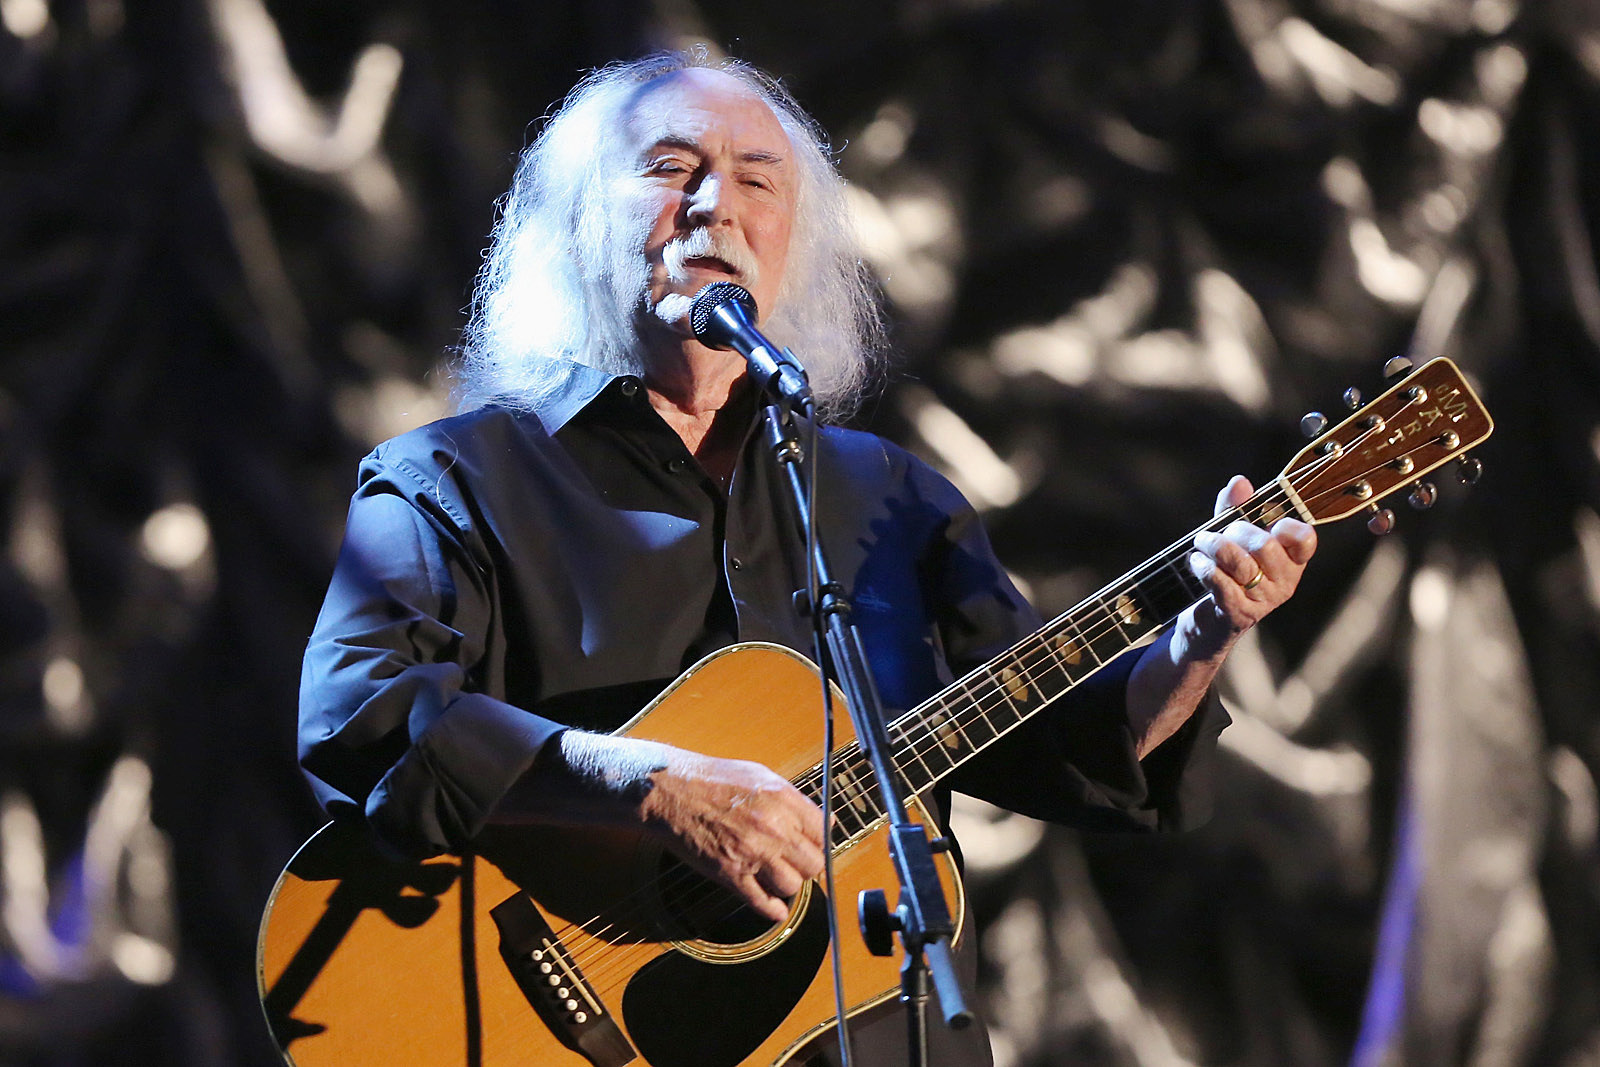 David Crosby Says Being a Social Outcast Is Educational